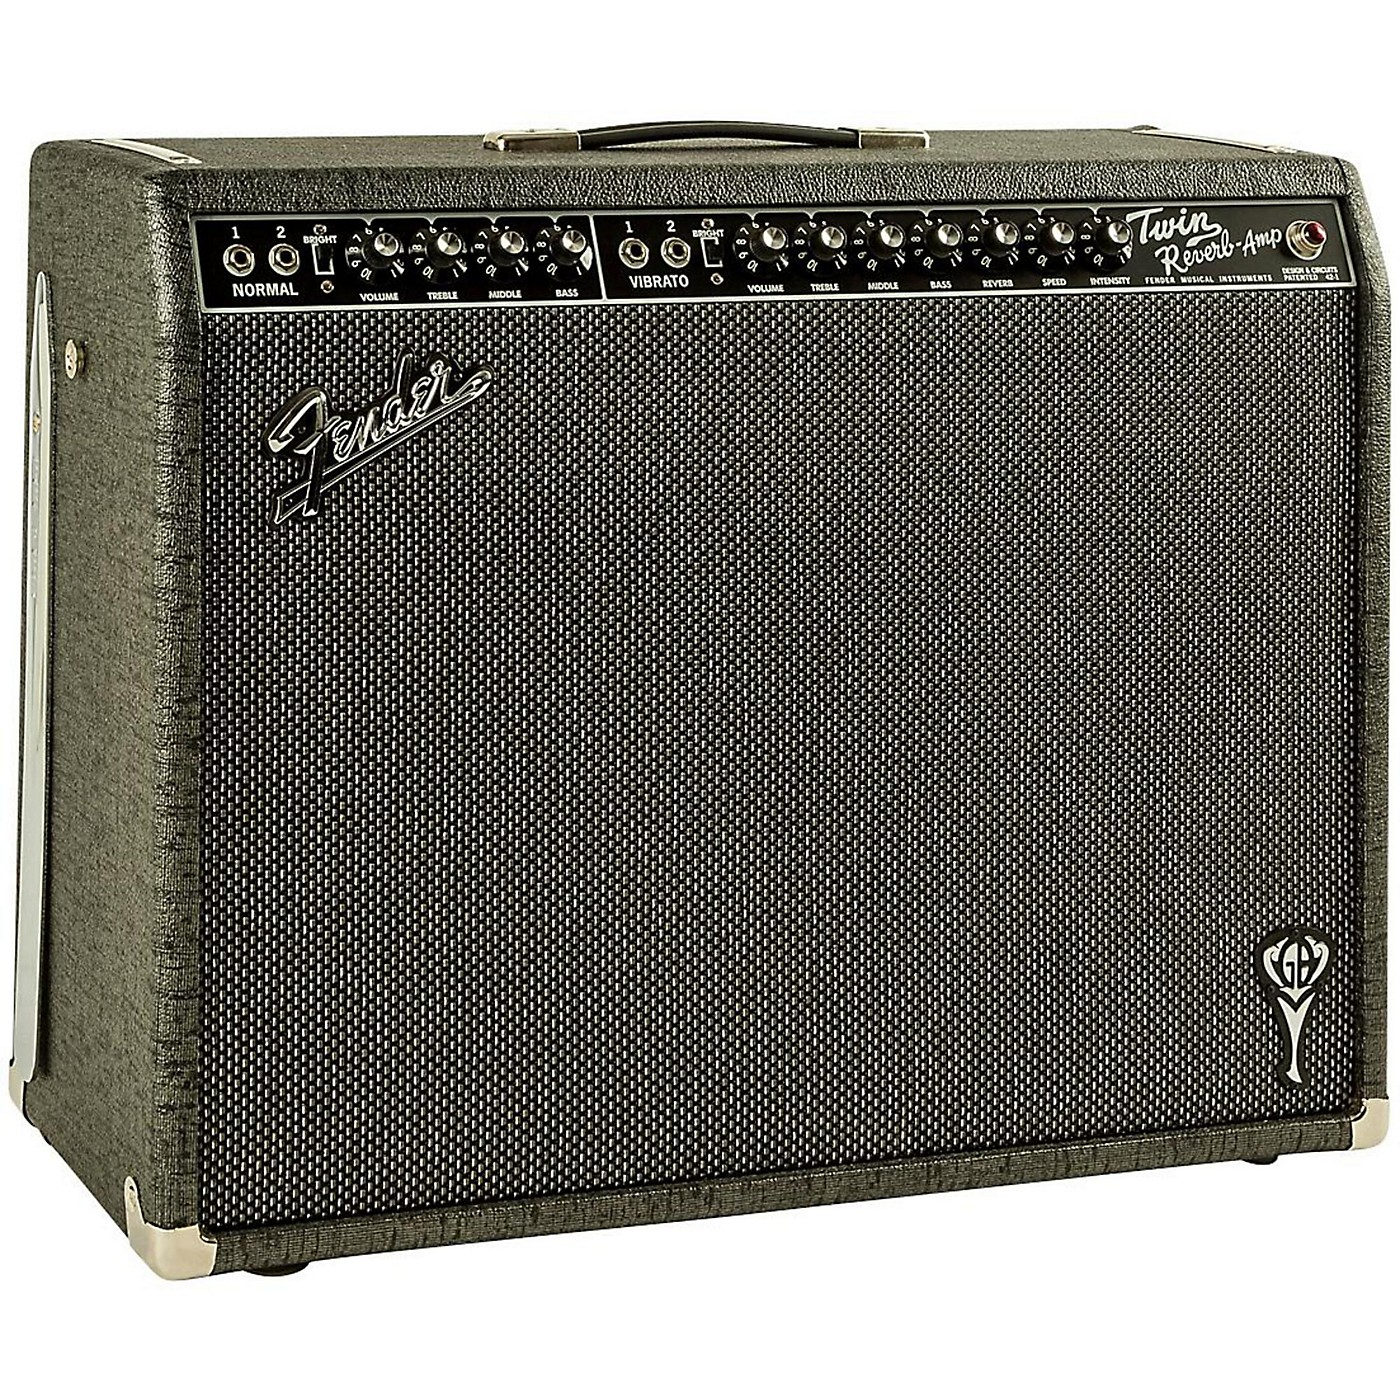 Fender GB George Benson Twin Reverb 2x12 Guitar Combo Amp thumbnail